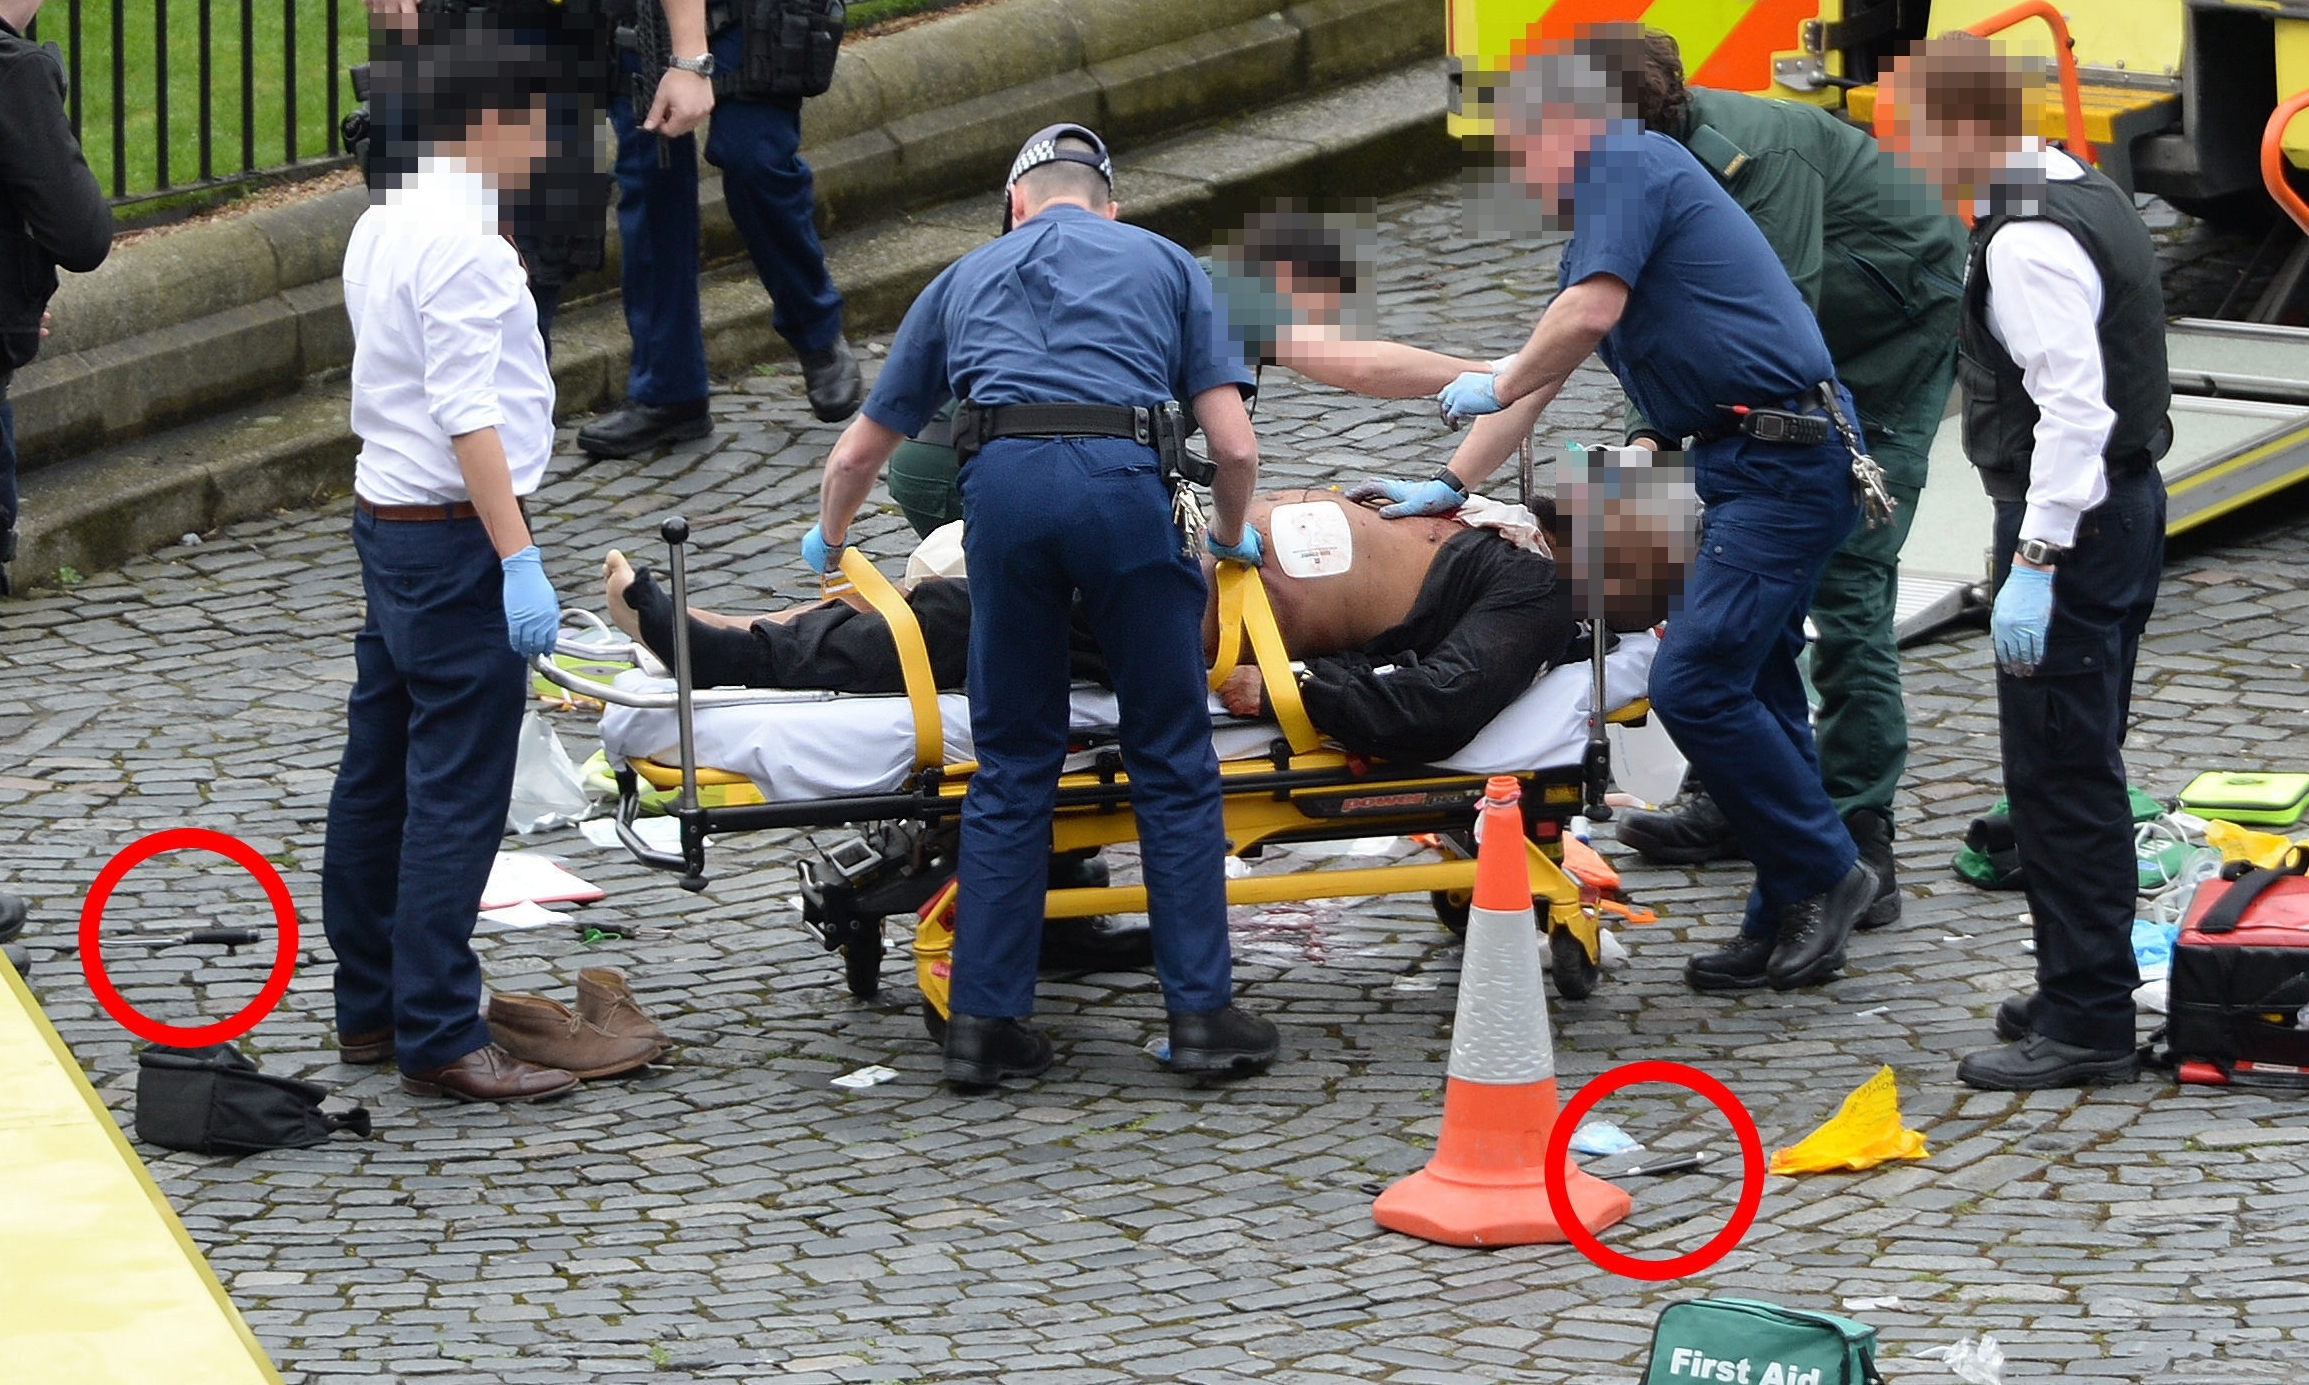 The suspected attacker, with knives highlighted on the ground.